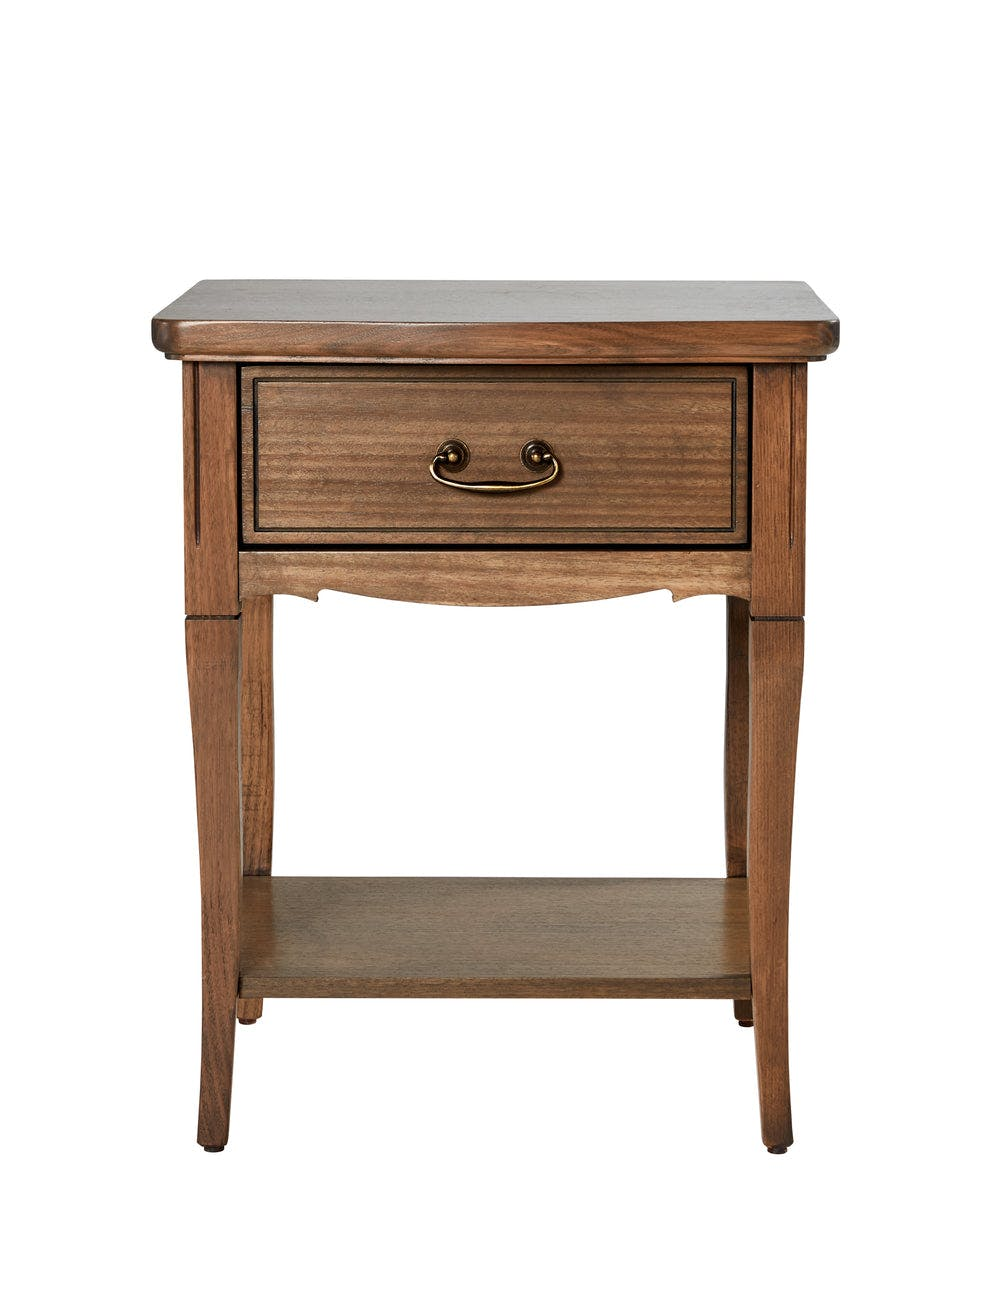 Elise Bedside Table (1 Drawer, 1 Shelf)